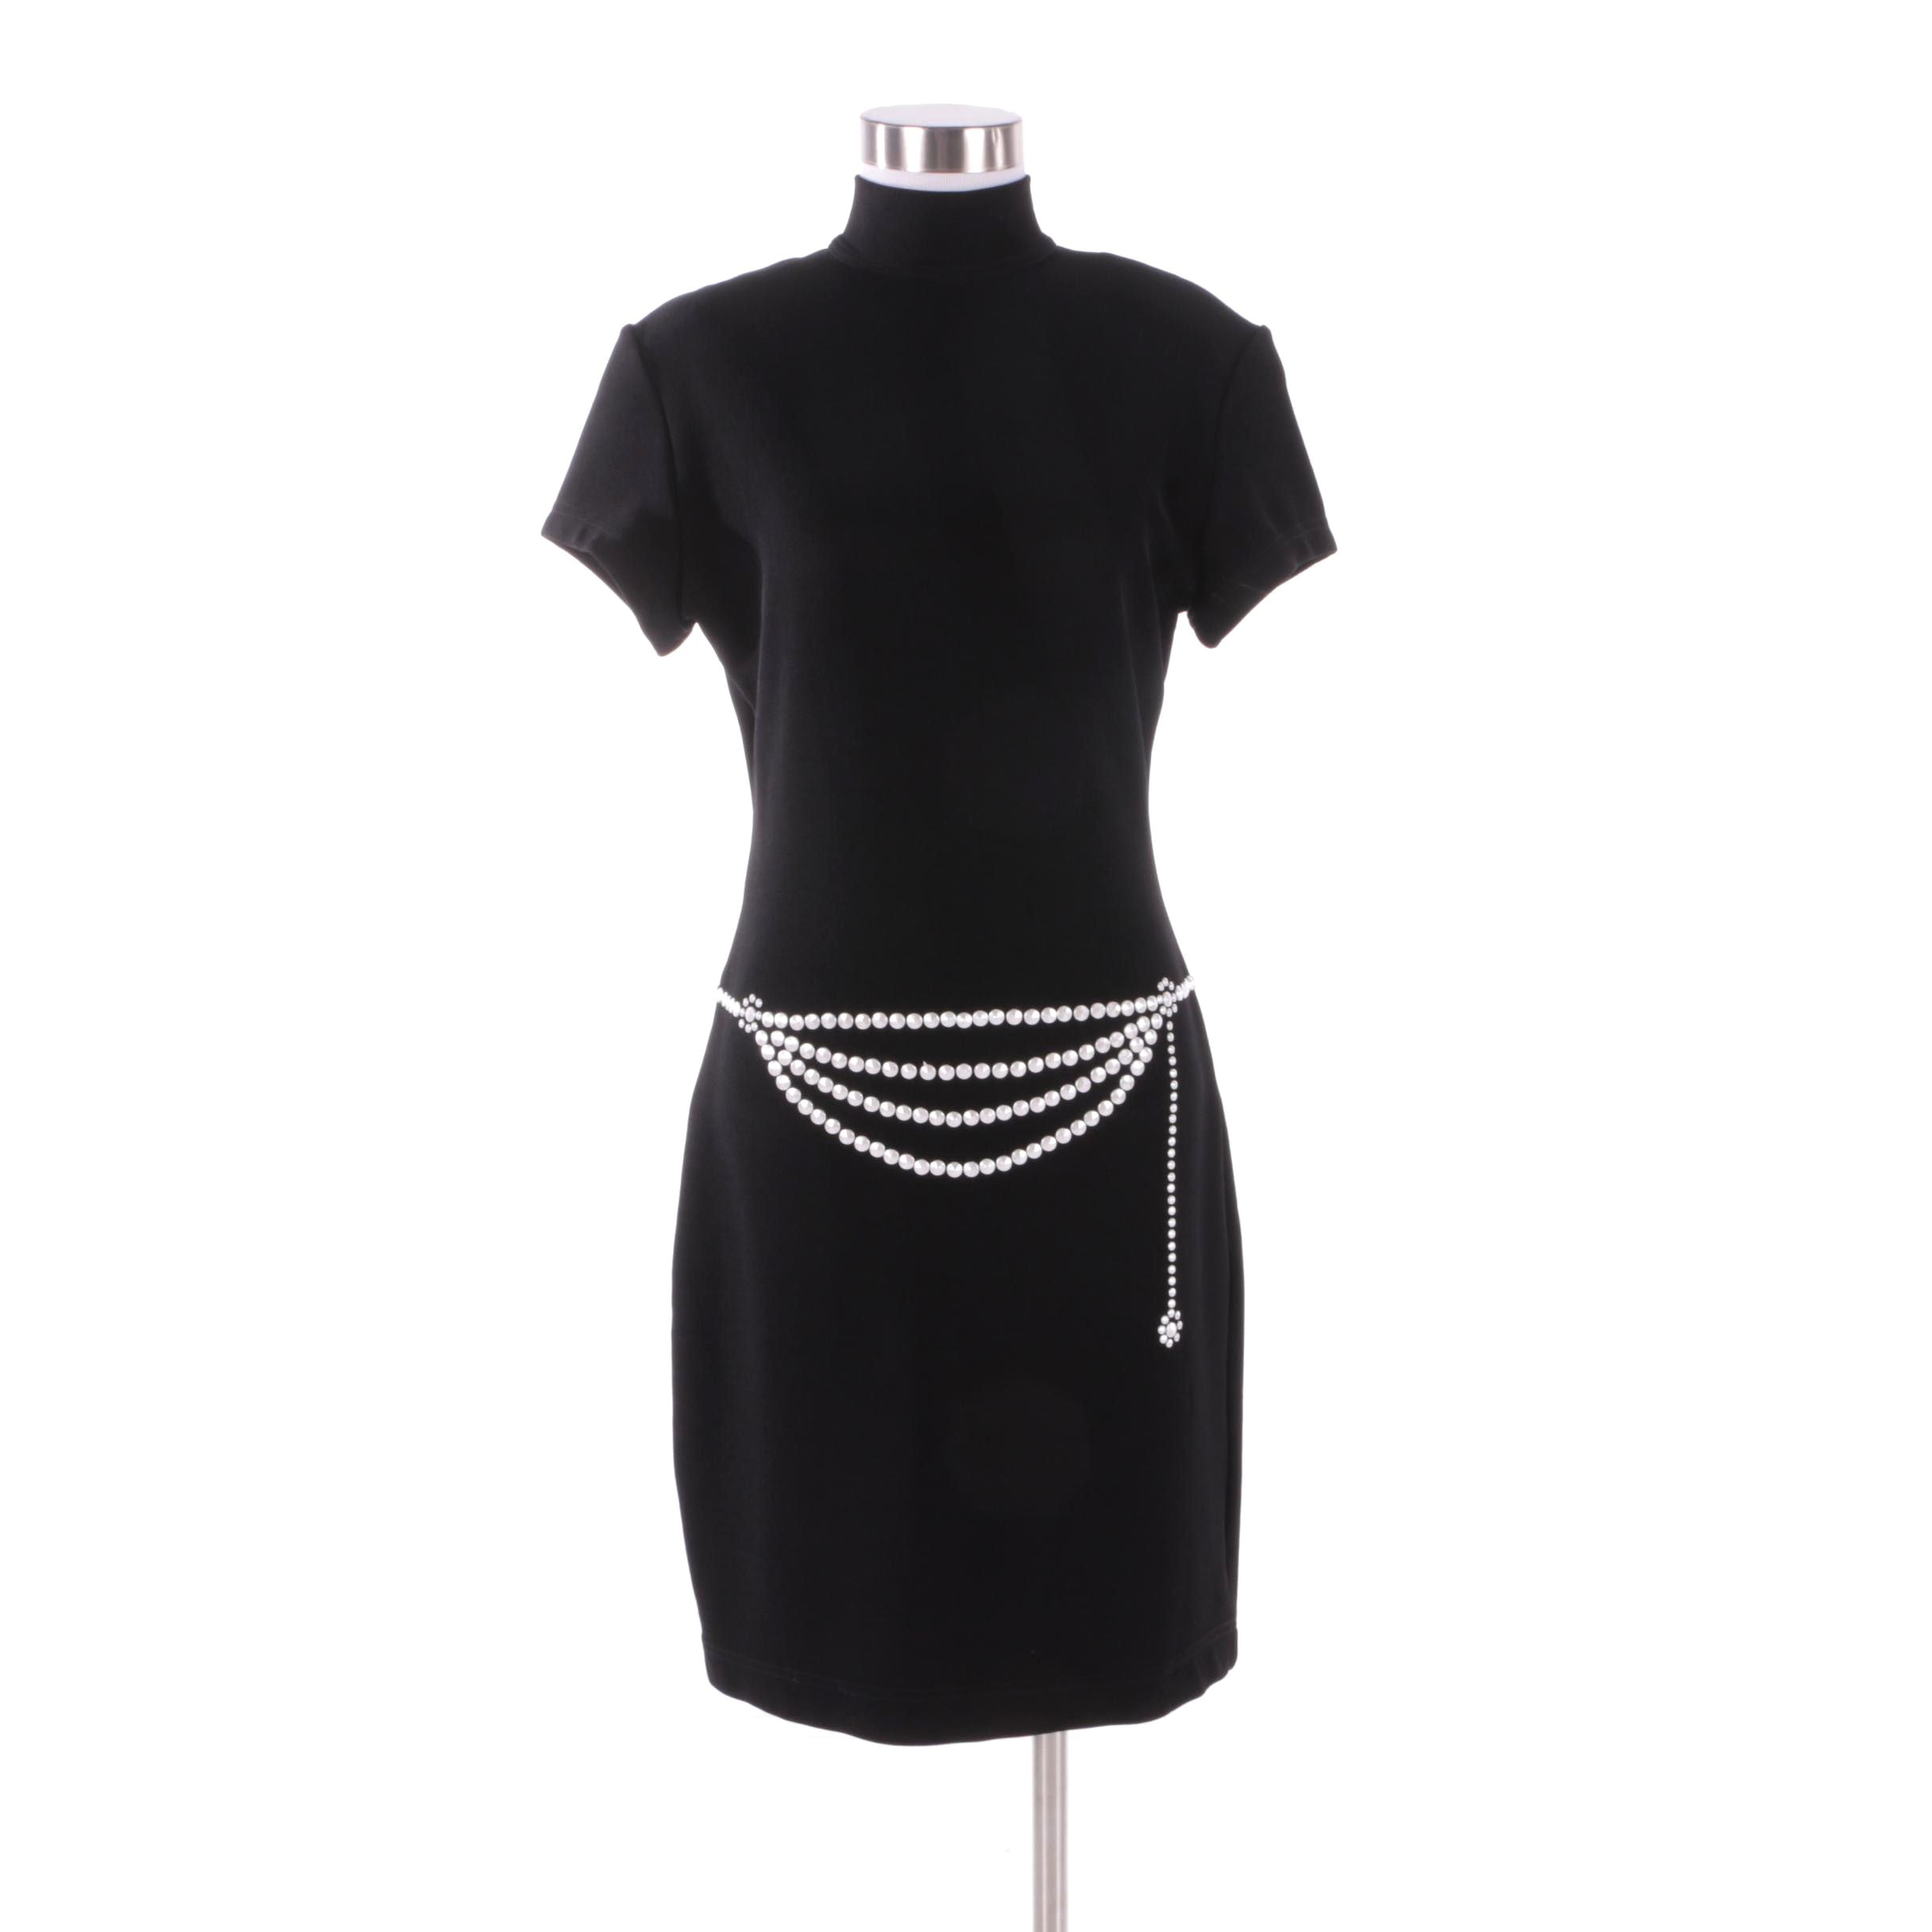 1980s Vintage Tadashi Shoji Black Shift Dress with Trompe l'Oeil Stud Belt